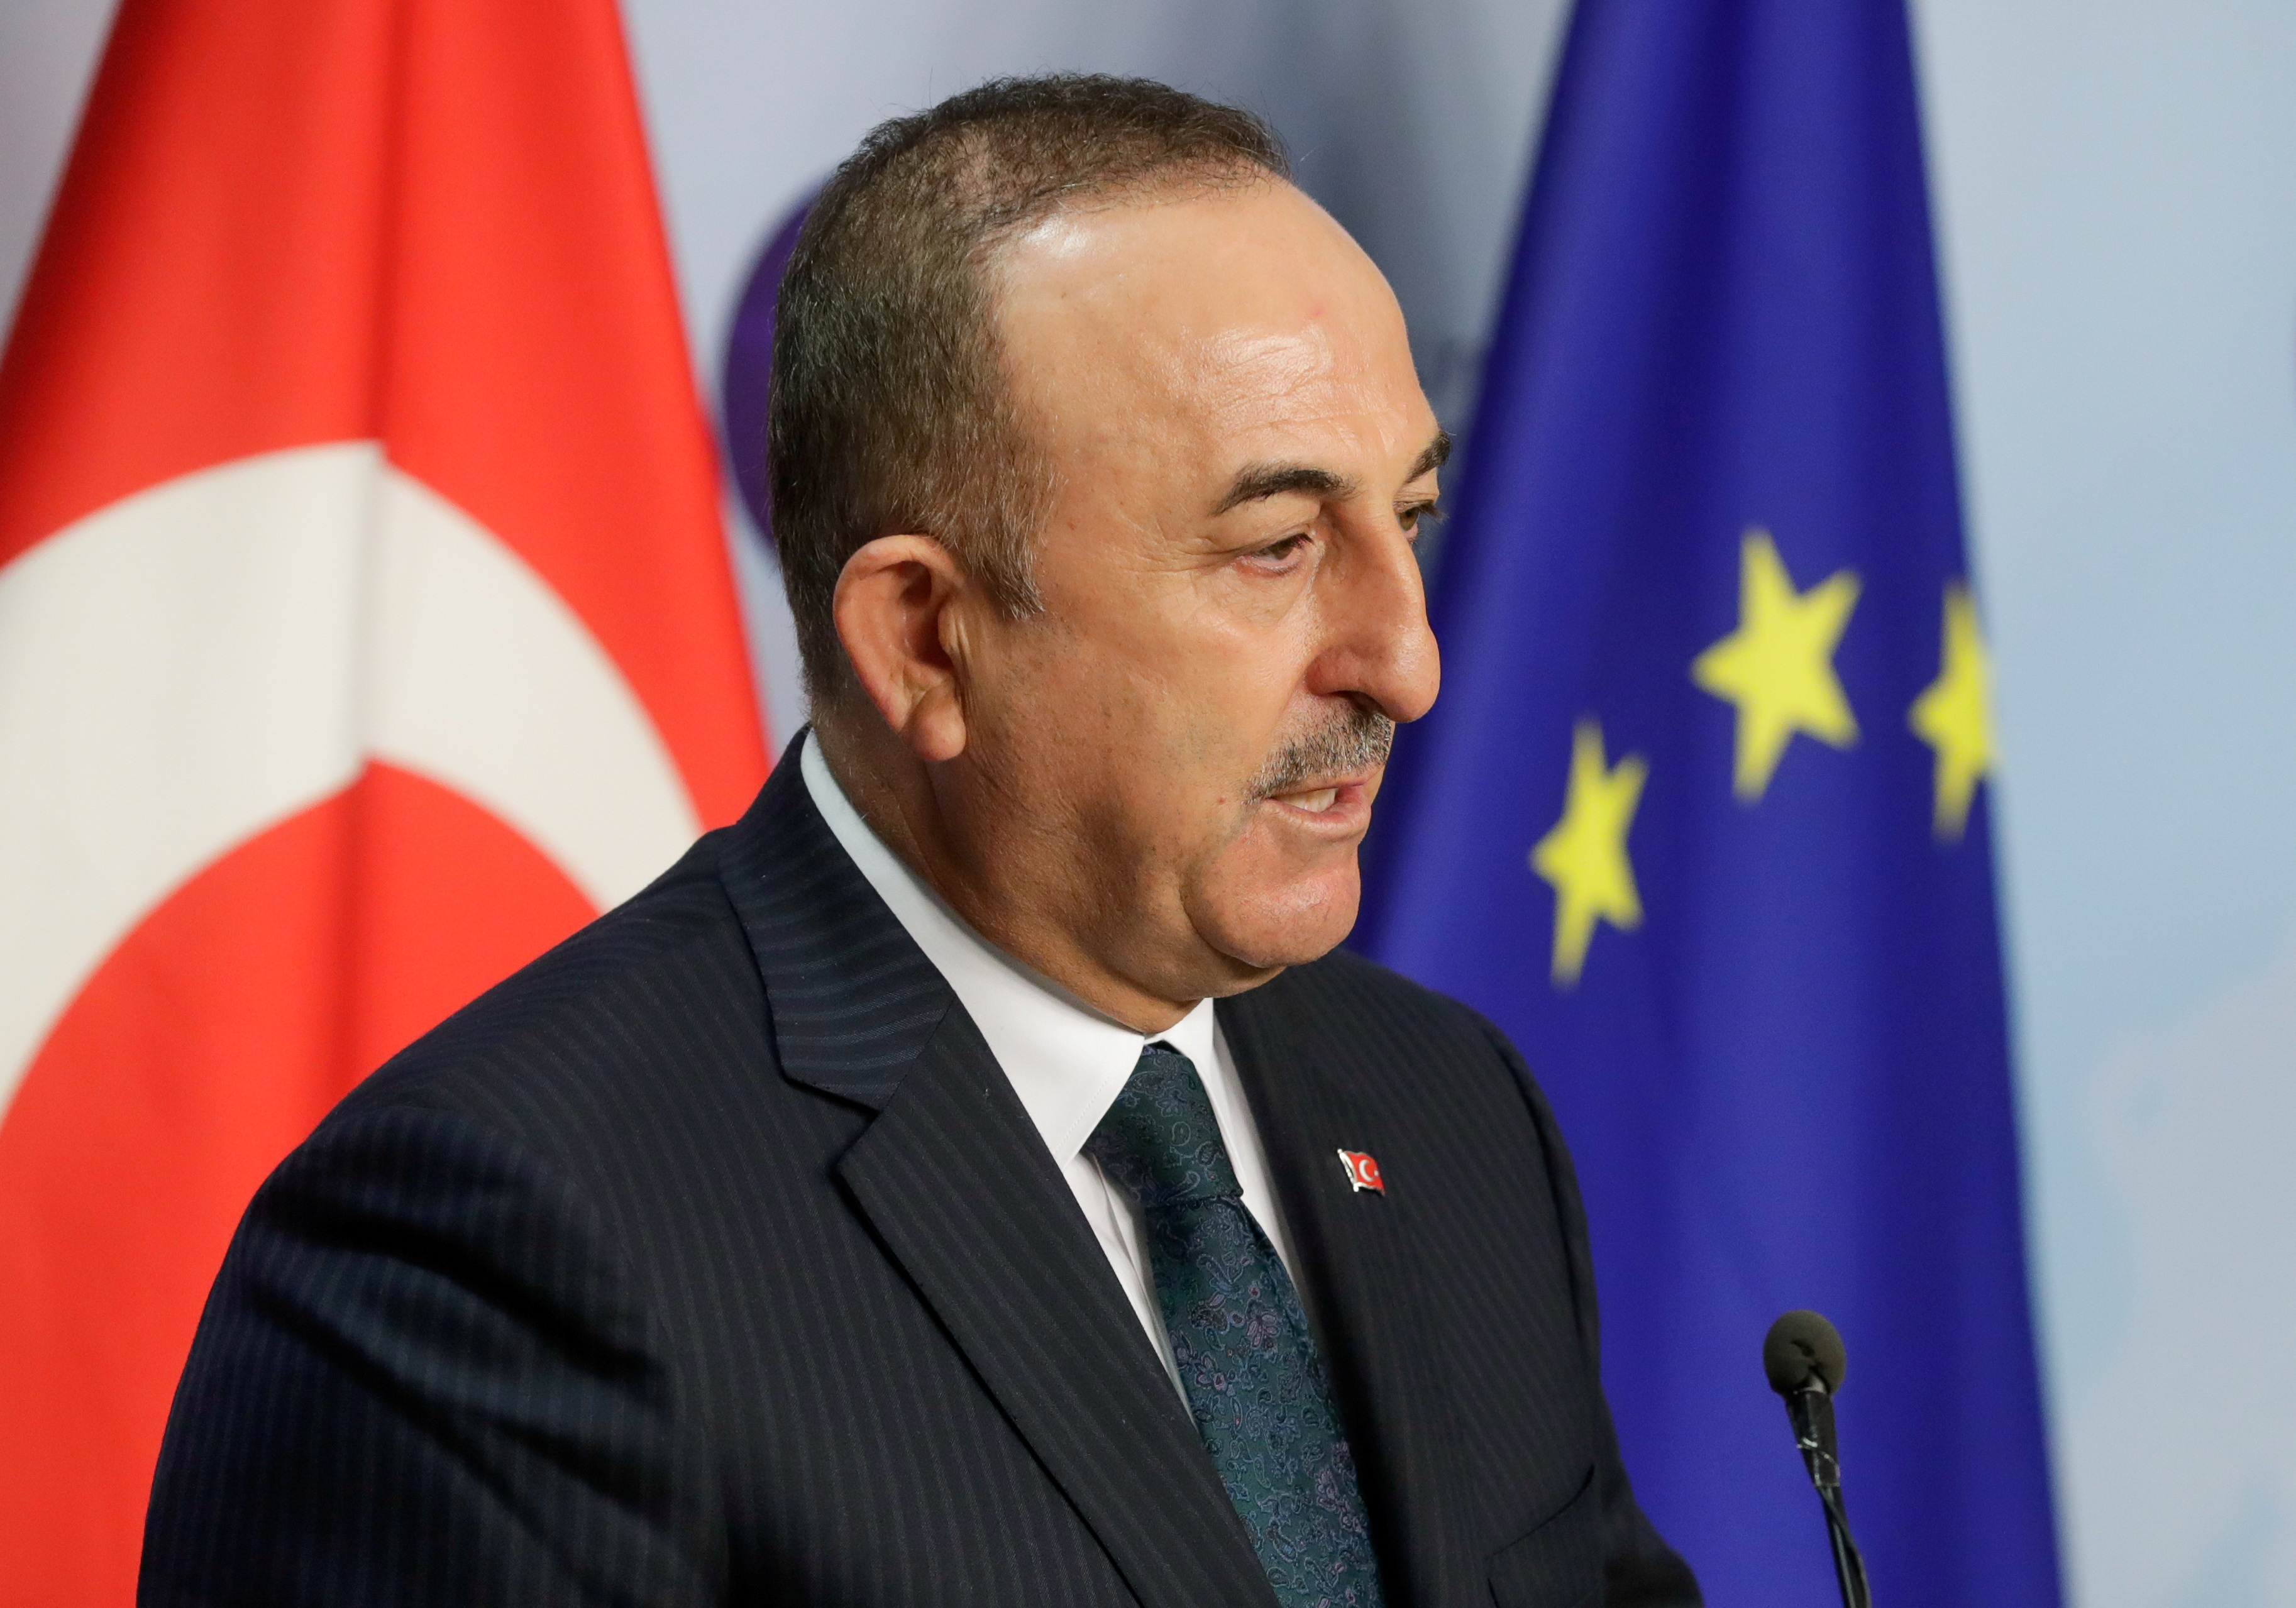 Turkish Foreign Minister Mevlut Cavusoglu speaks as he gives a joint statement with High Representative of the European Union for Foreign Affairs and Security Policy Josep Borrell (not pictured), ahead of a meeting at the EEAS in Brussels, Belgium, January 21, 2021. Stephanie Lecocq/Pool via REUTERS